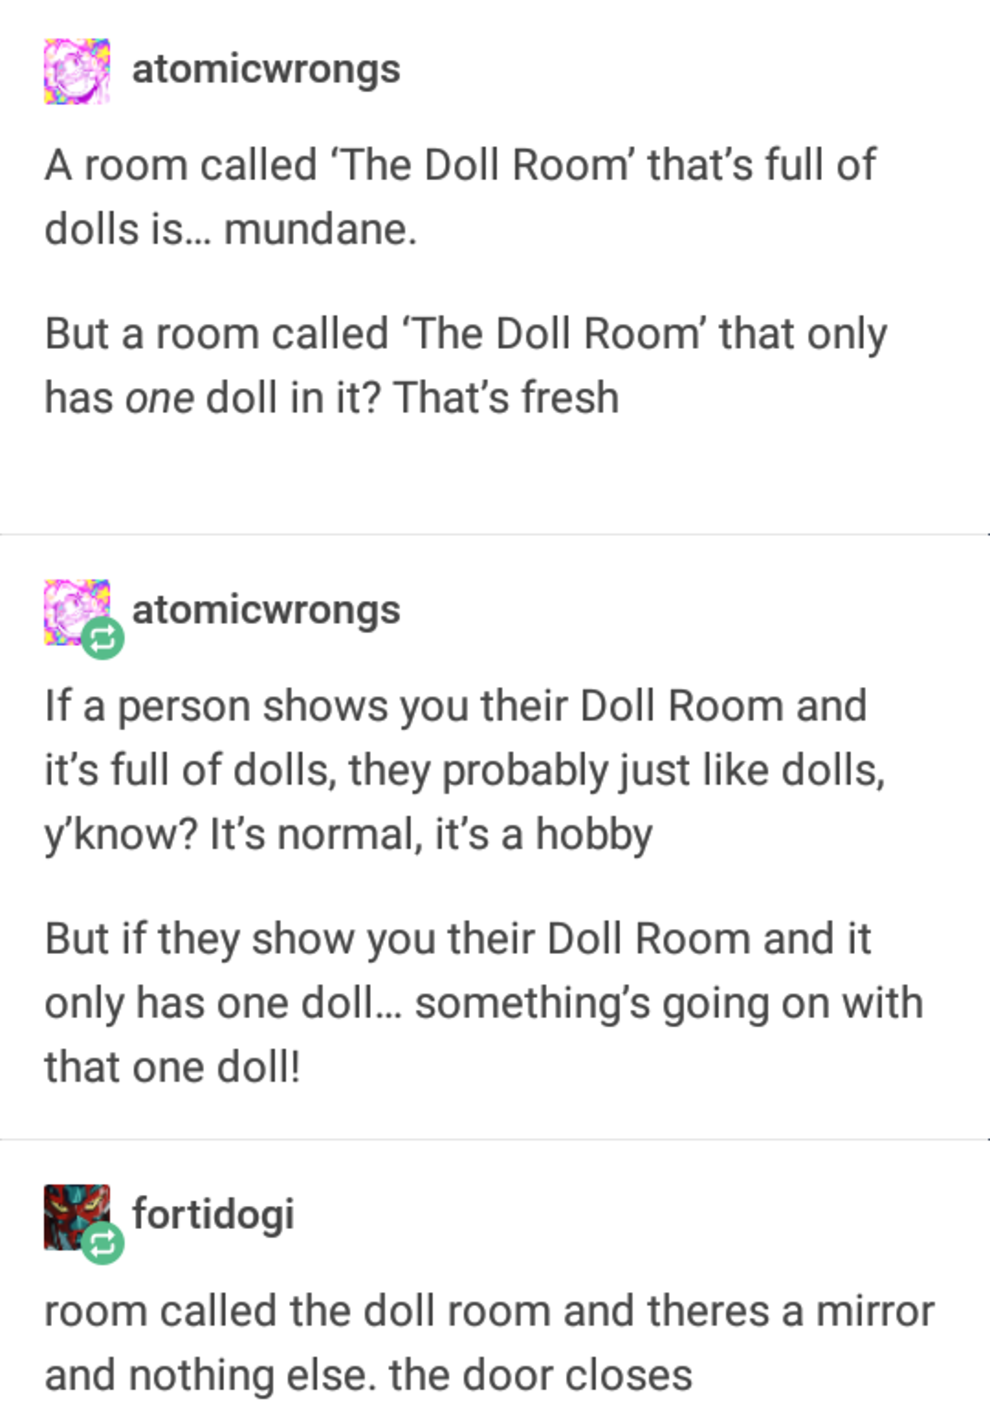 17 Disturbing Tumblr Posts That I Can't Unsee, And Now You